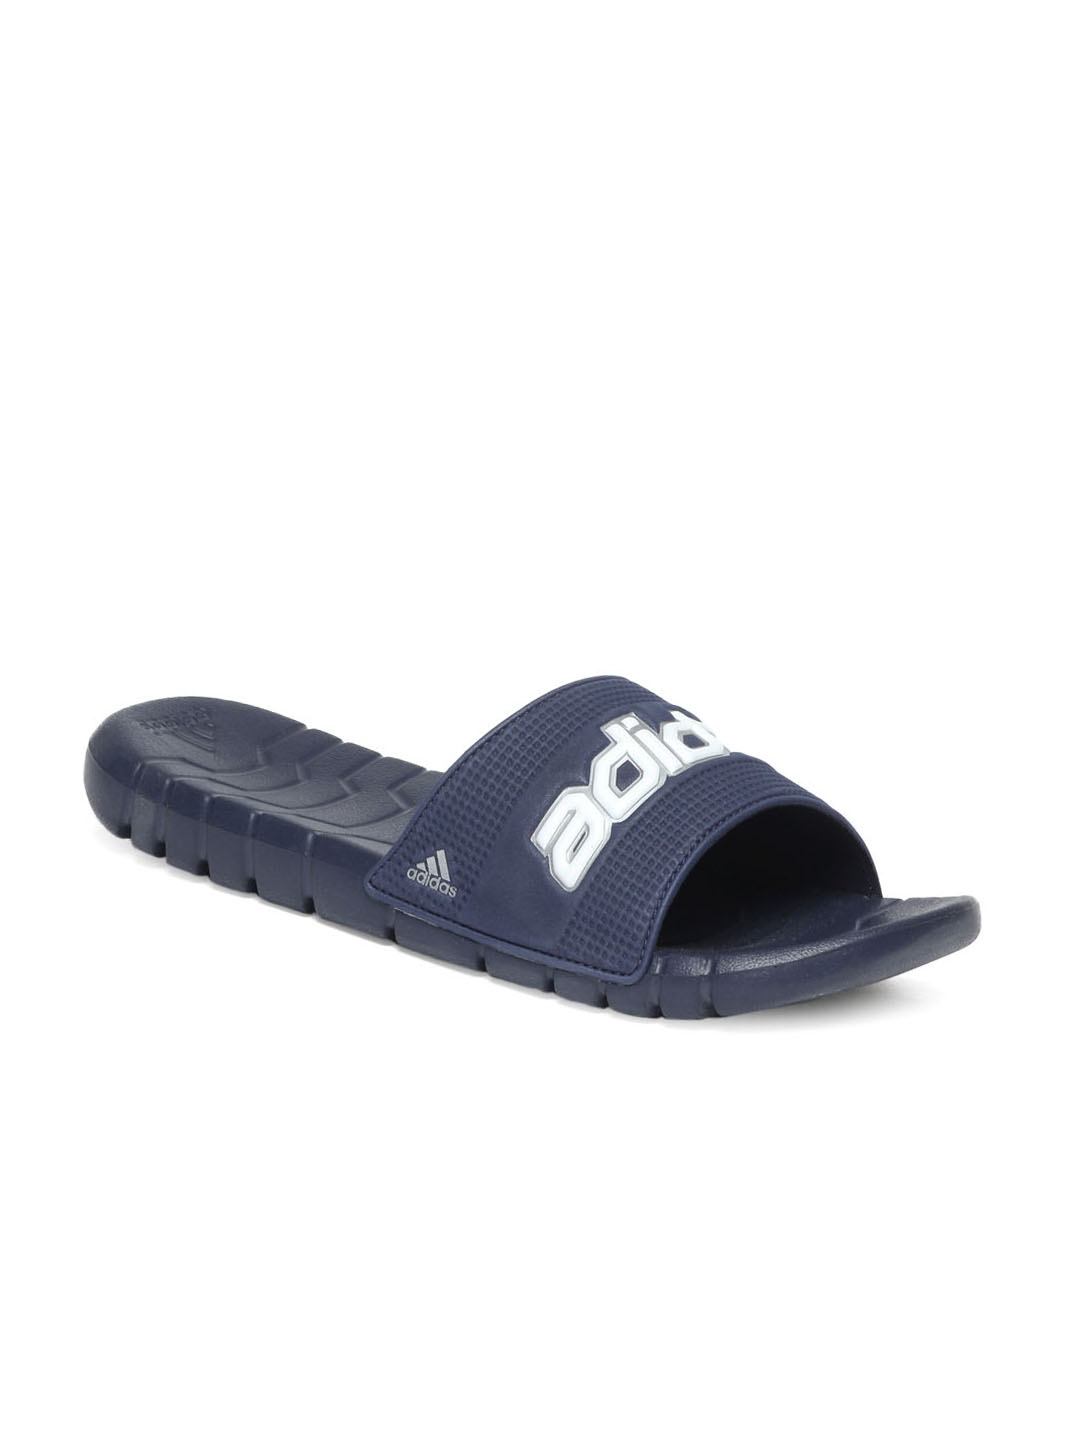 Adidas Men Navy Blue Flip Flops